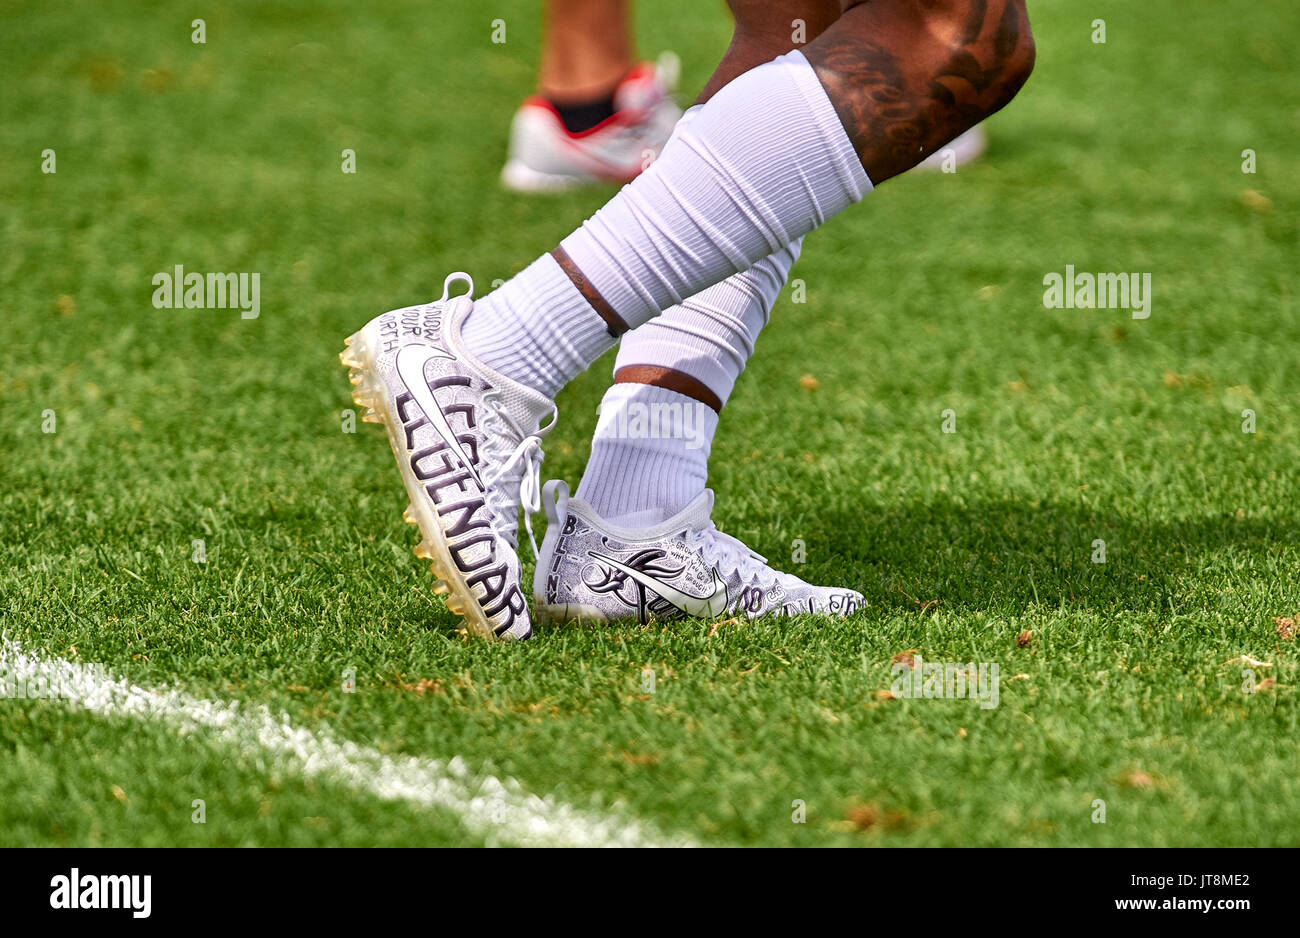 2017 Odell Beckham Jr Stock Photos & 2017 Odell Beckham Jr Stock ...